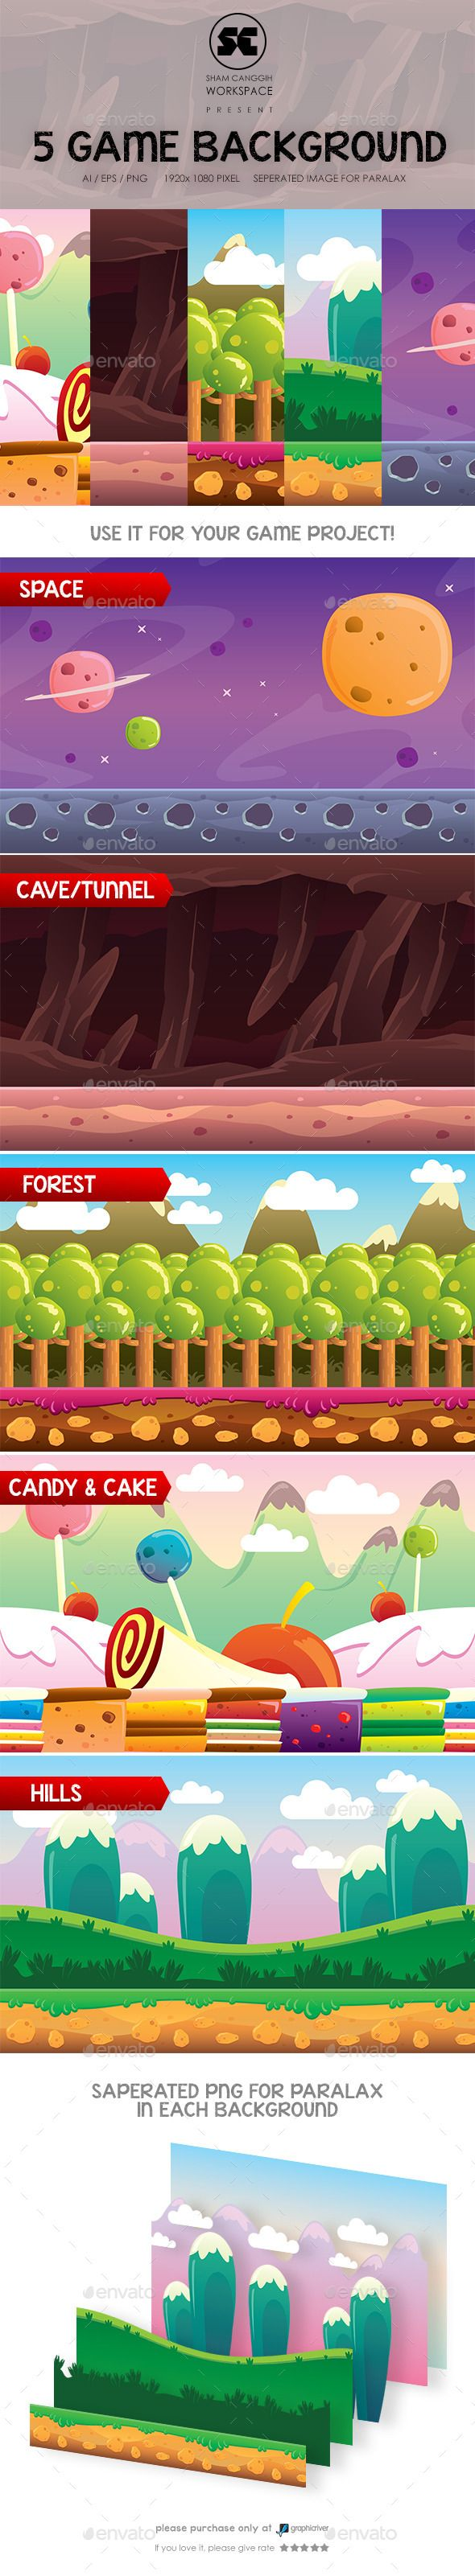 5 in 1 Game Background — Photoshop PSD #cartoon #image • Available here → https://graphicriver.net/item/5-in-1-game-background/10259065?ref=pxcr